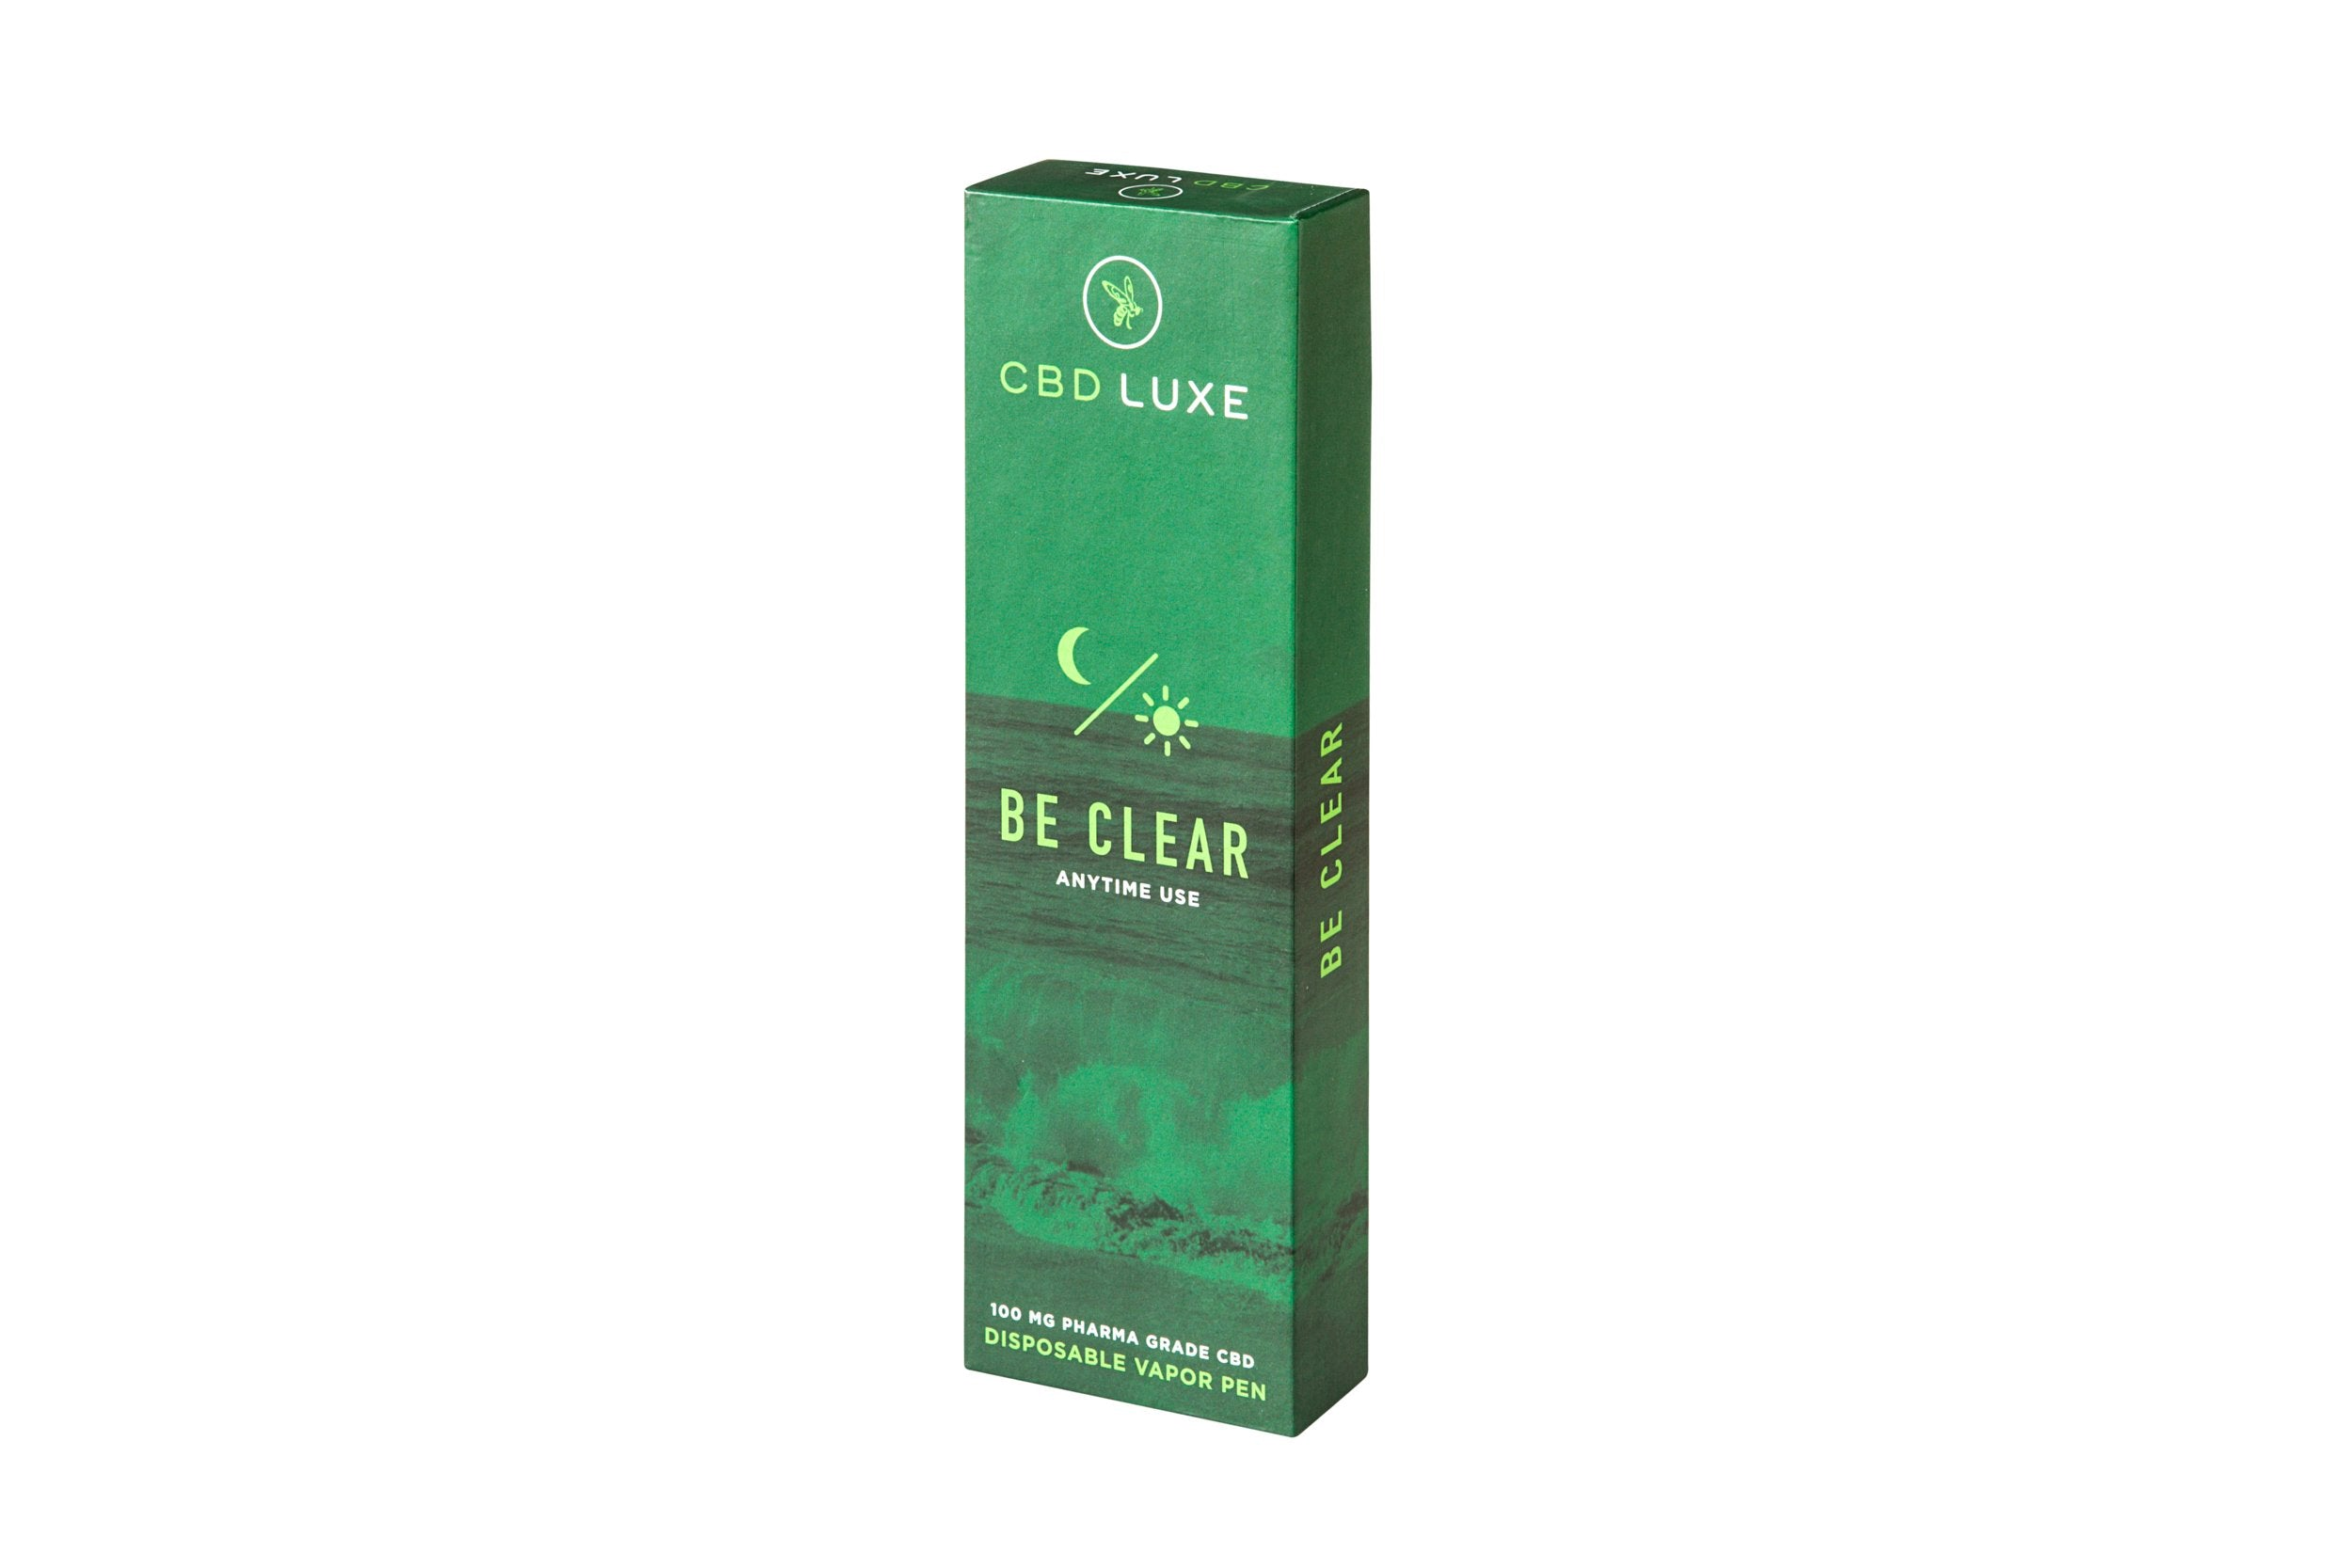 CBD Luxe Ultra Premium Vape Pen Be Clear